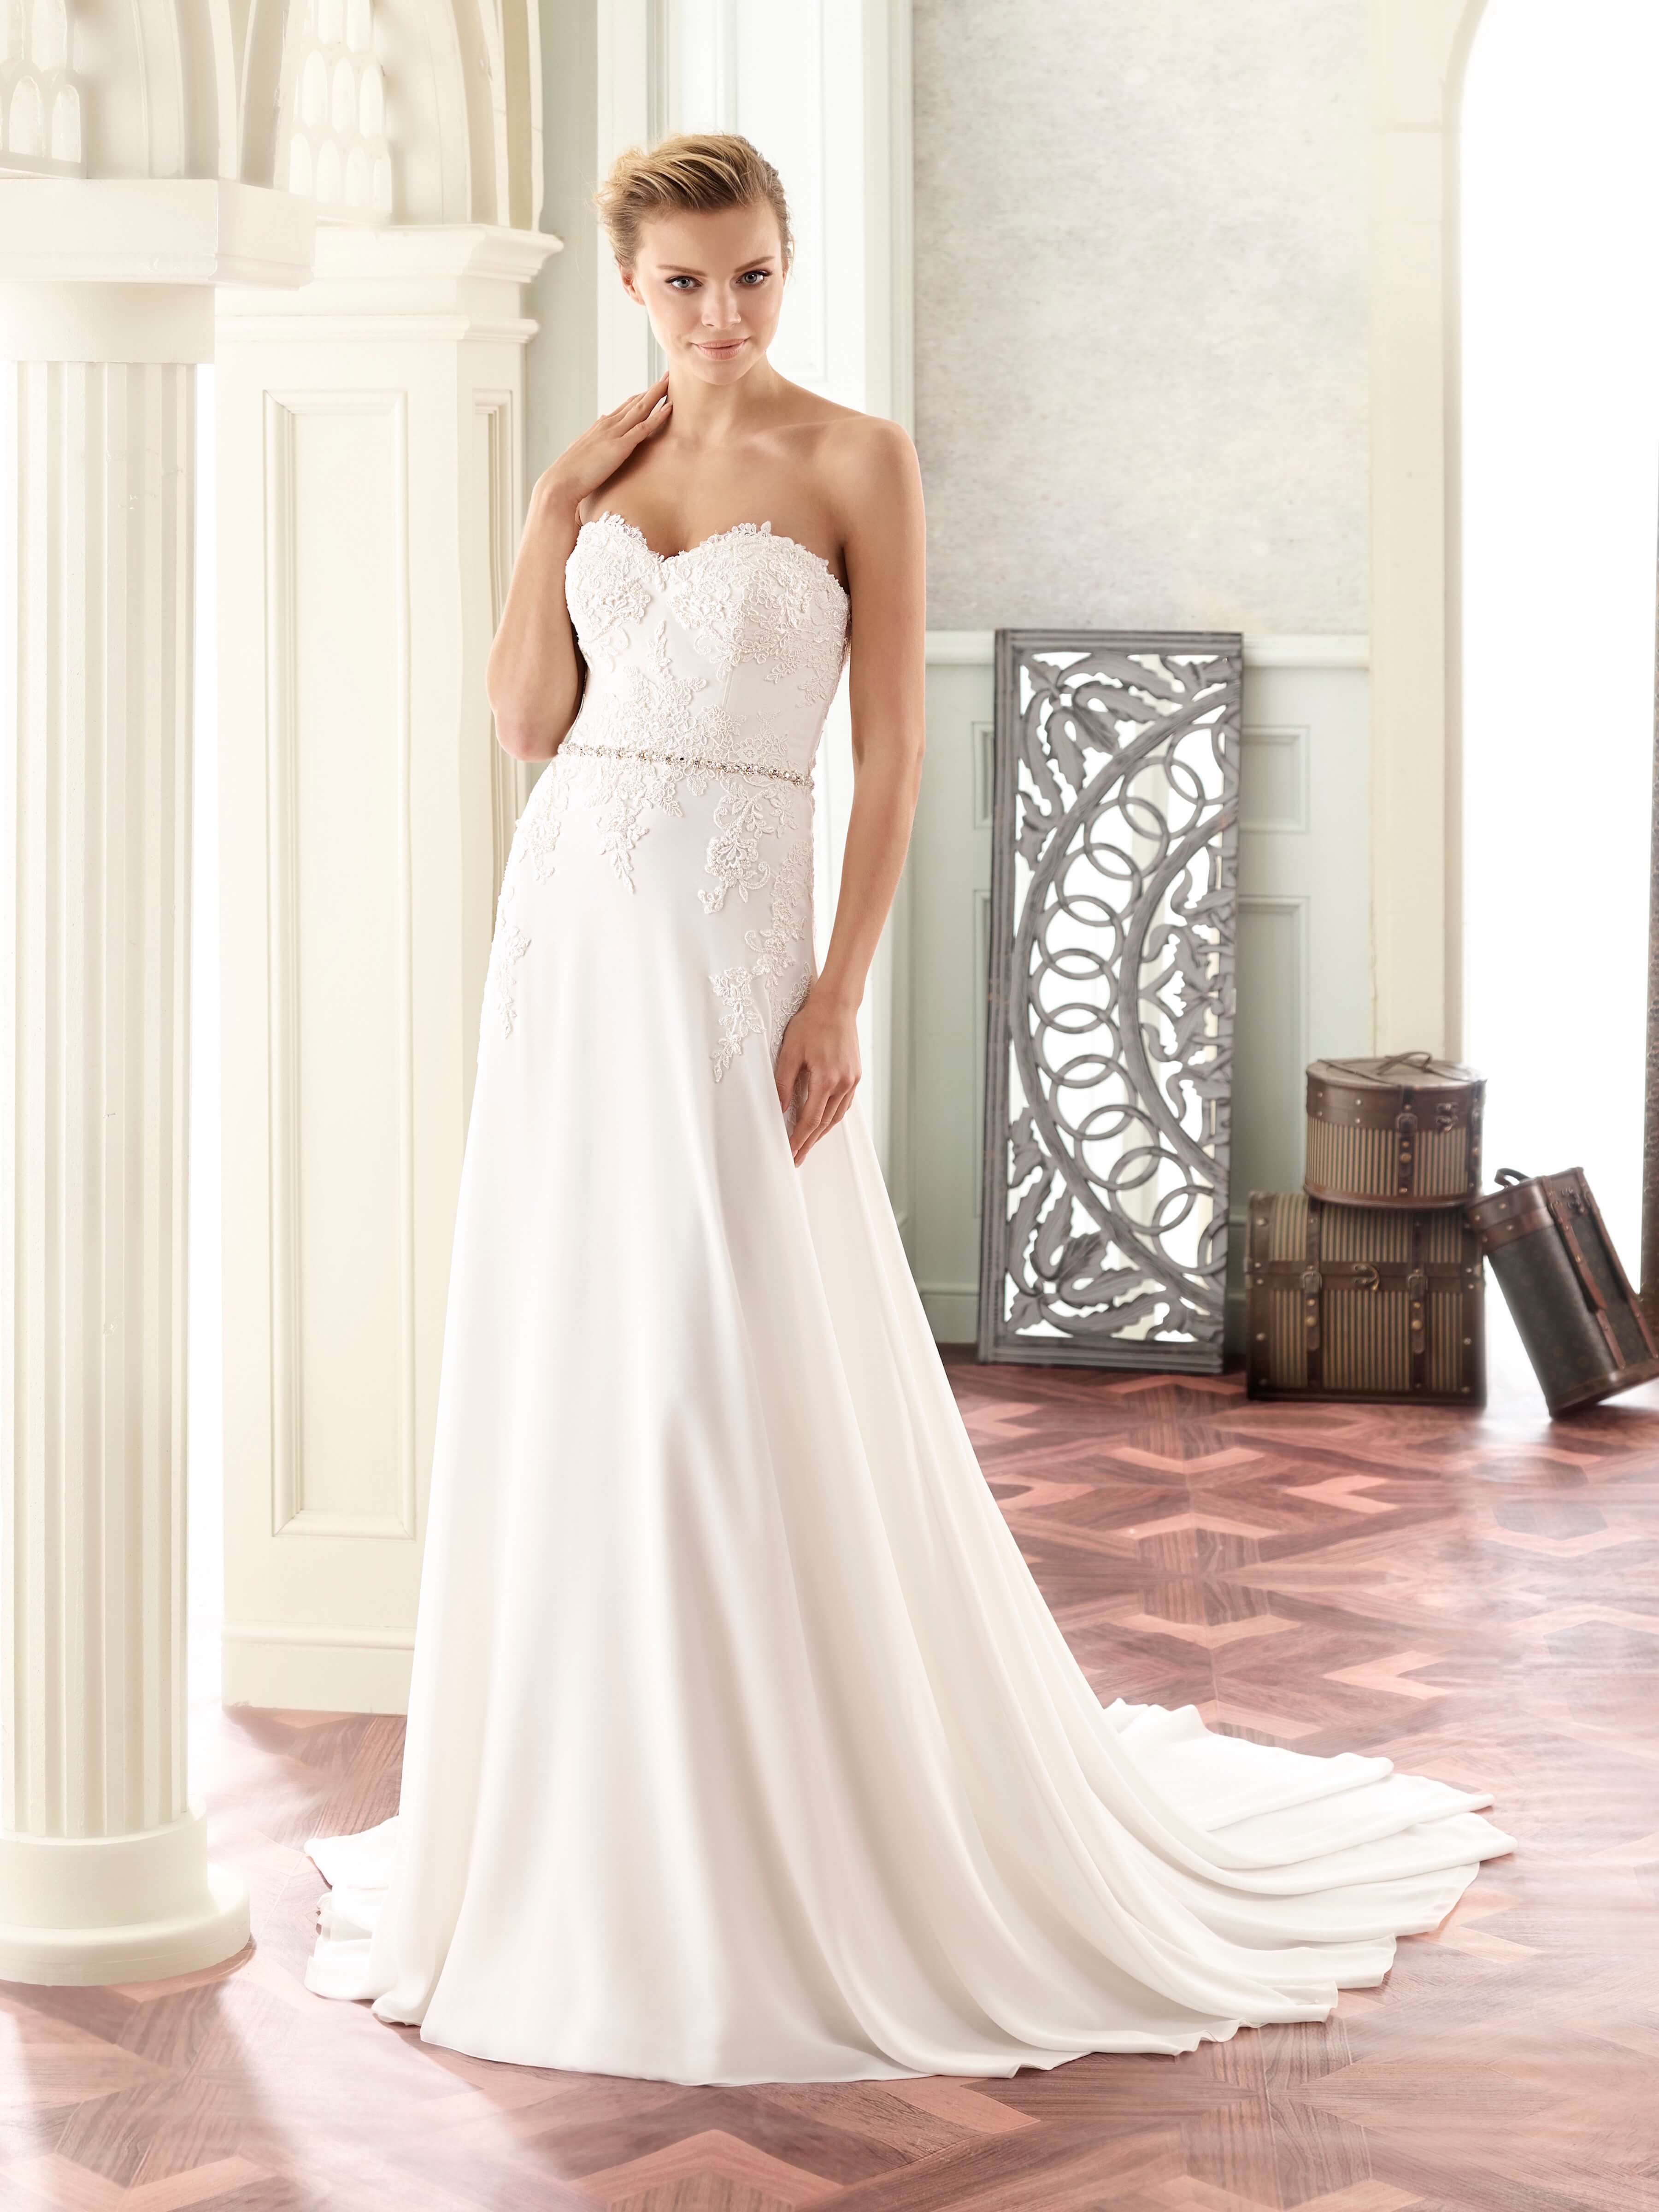 TOLVA wedding dresses and gowns